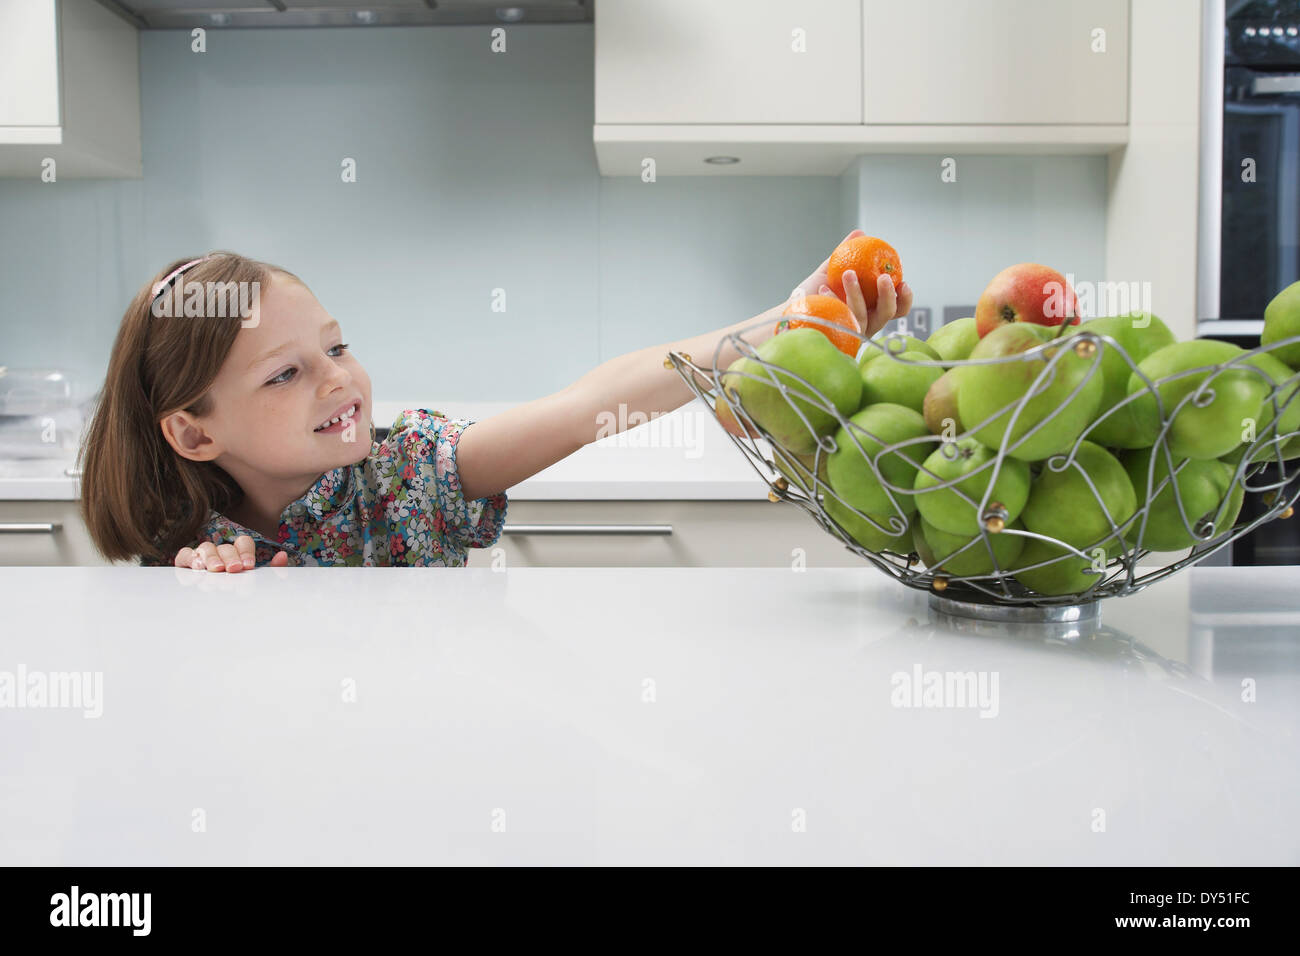 Young girl reaching for a tangerine from the fruit bowl - Stock Image